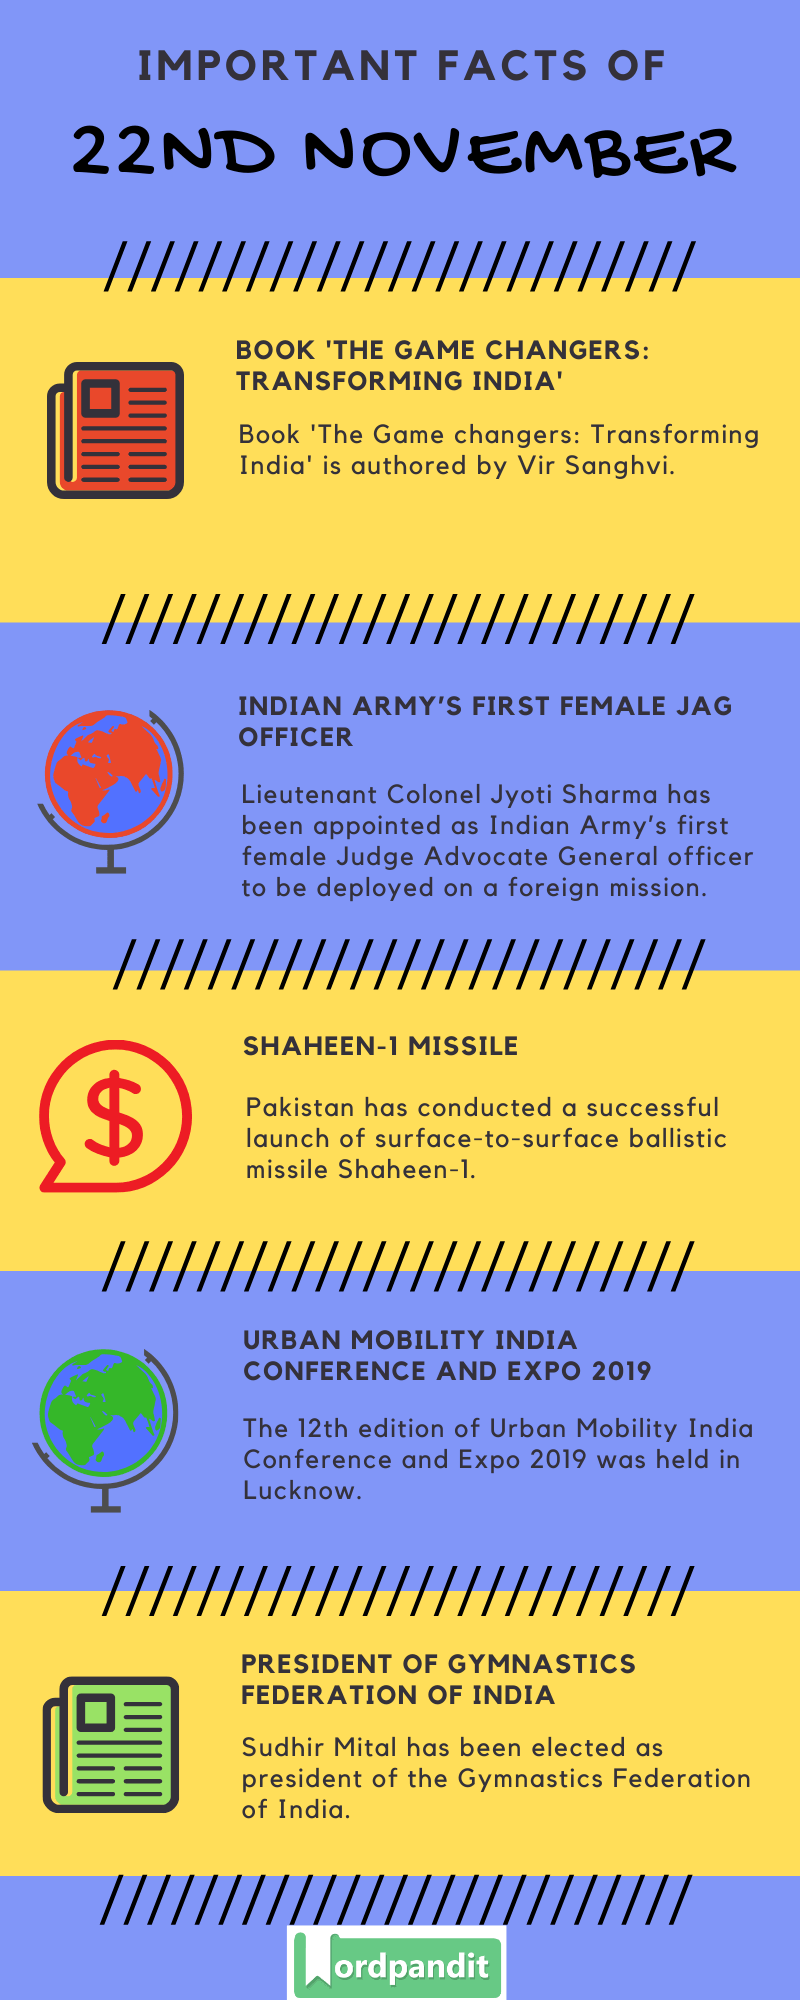 Daily Current Affairs 22 November 2019 Current Affairs Quiz 22 November 2019 Current Affairs Infographic